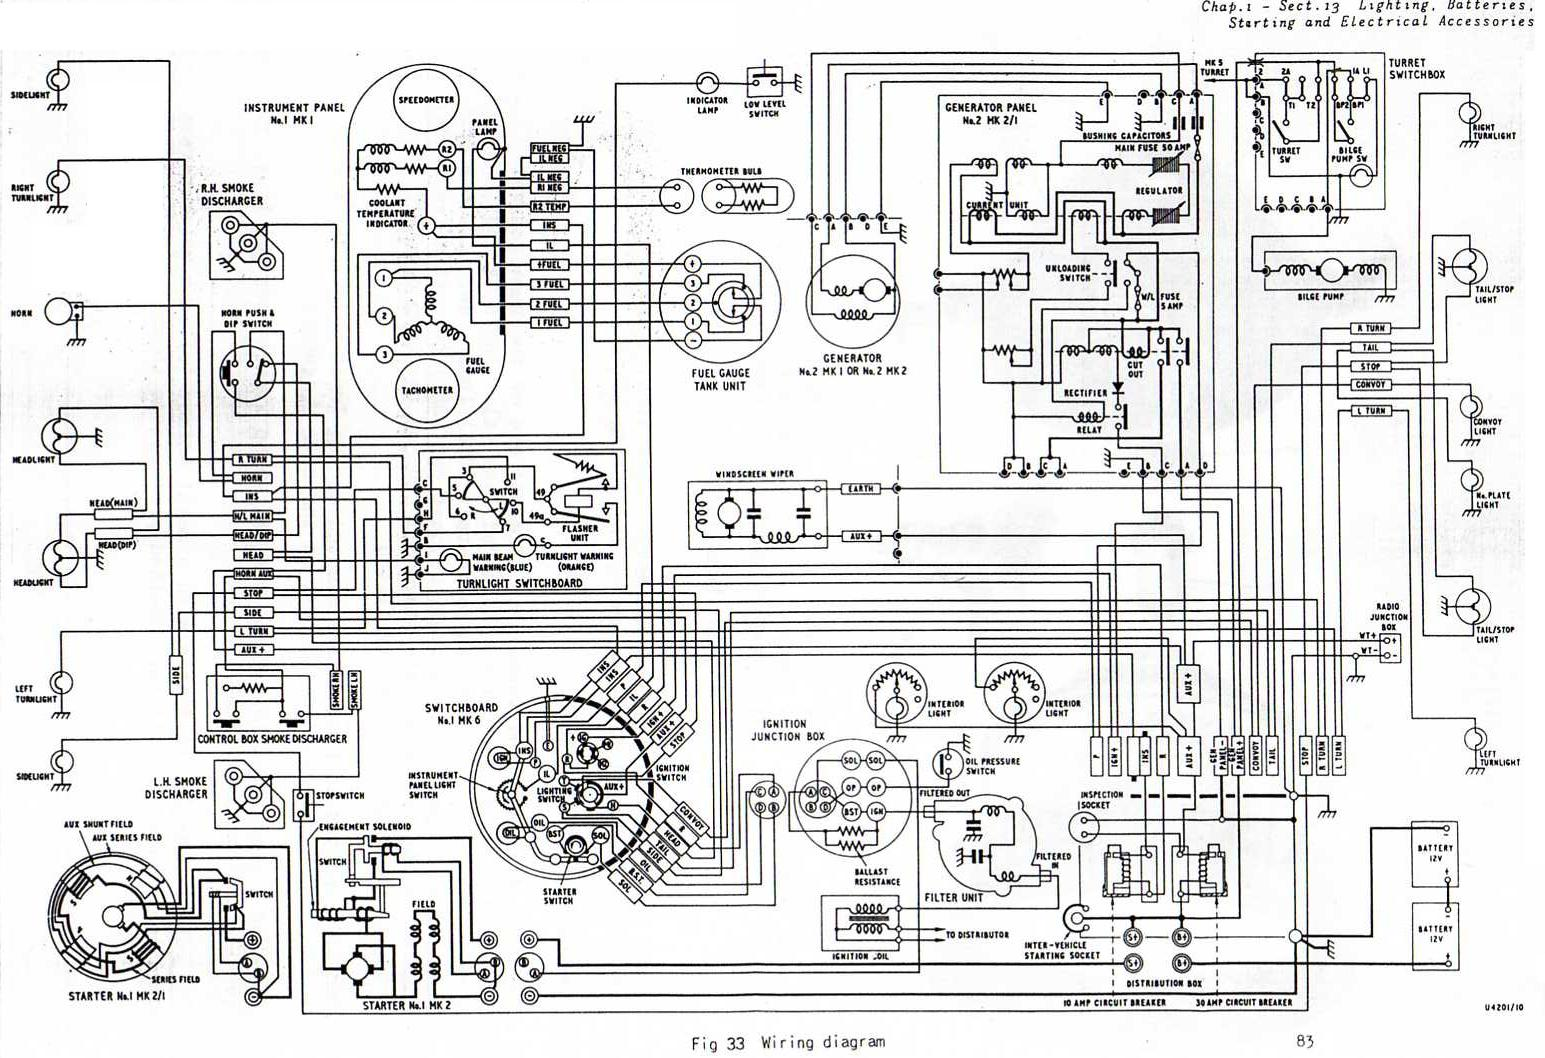 Complicated Wiring Diagrams House - Library Of Wiring Diagrams •